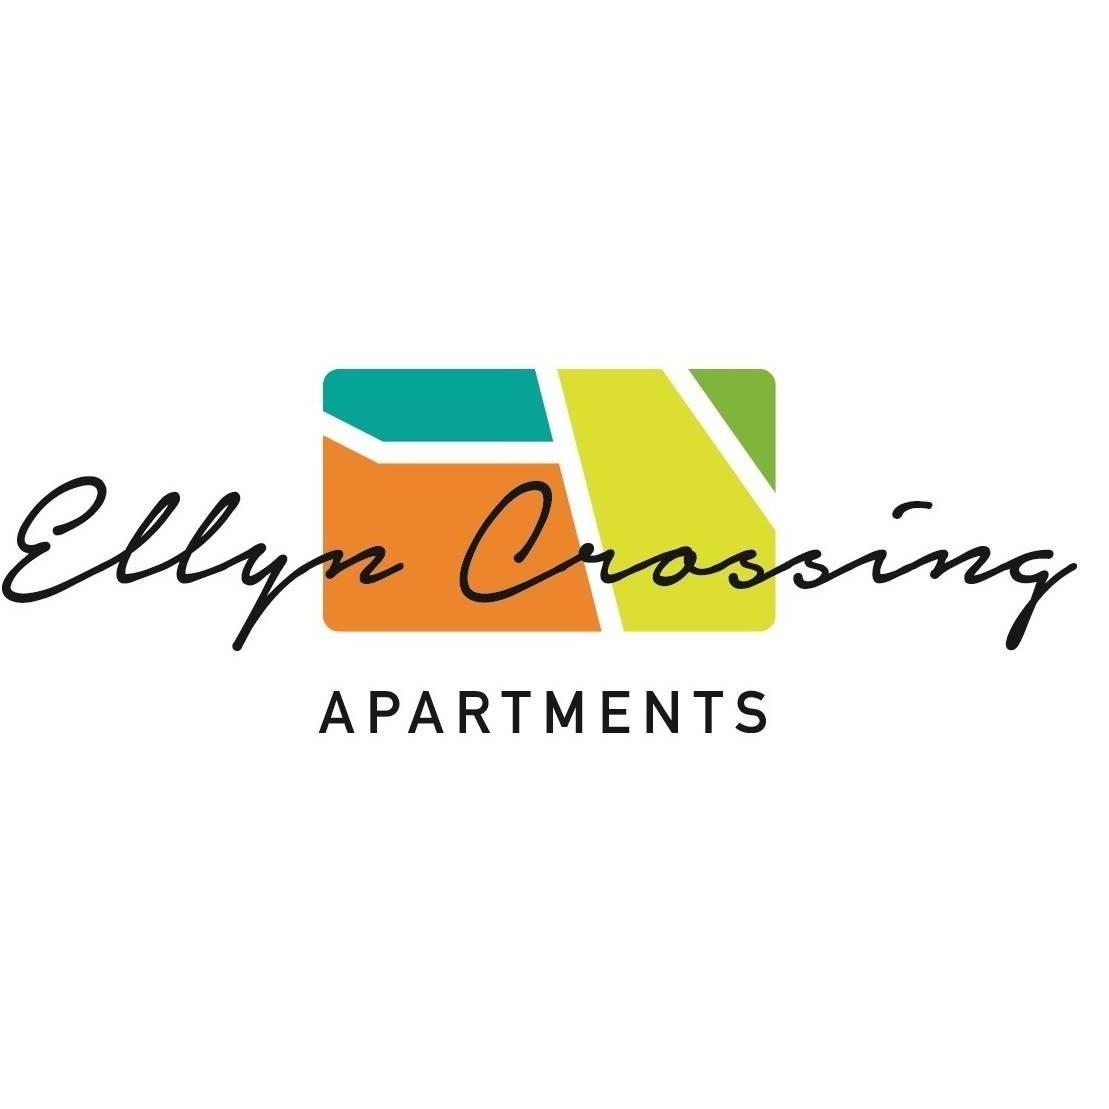 Ellyn Crossing Apartments - Glendale Heights, IL 60139 - (630)387-7400 | ShowMeLocal.com